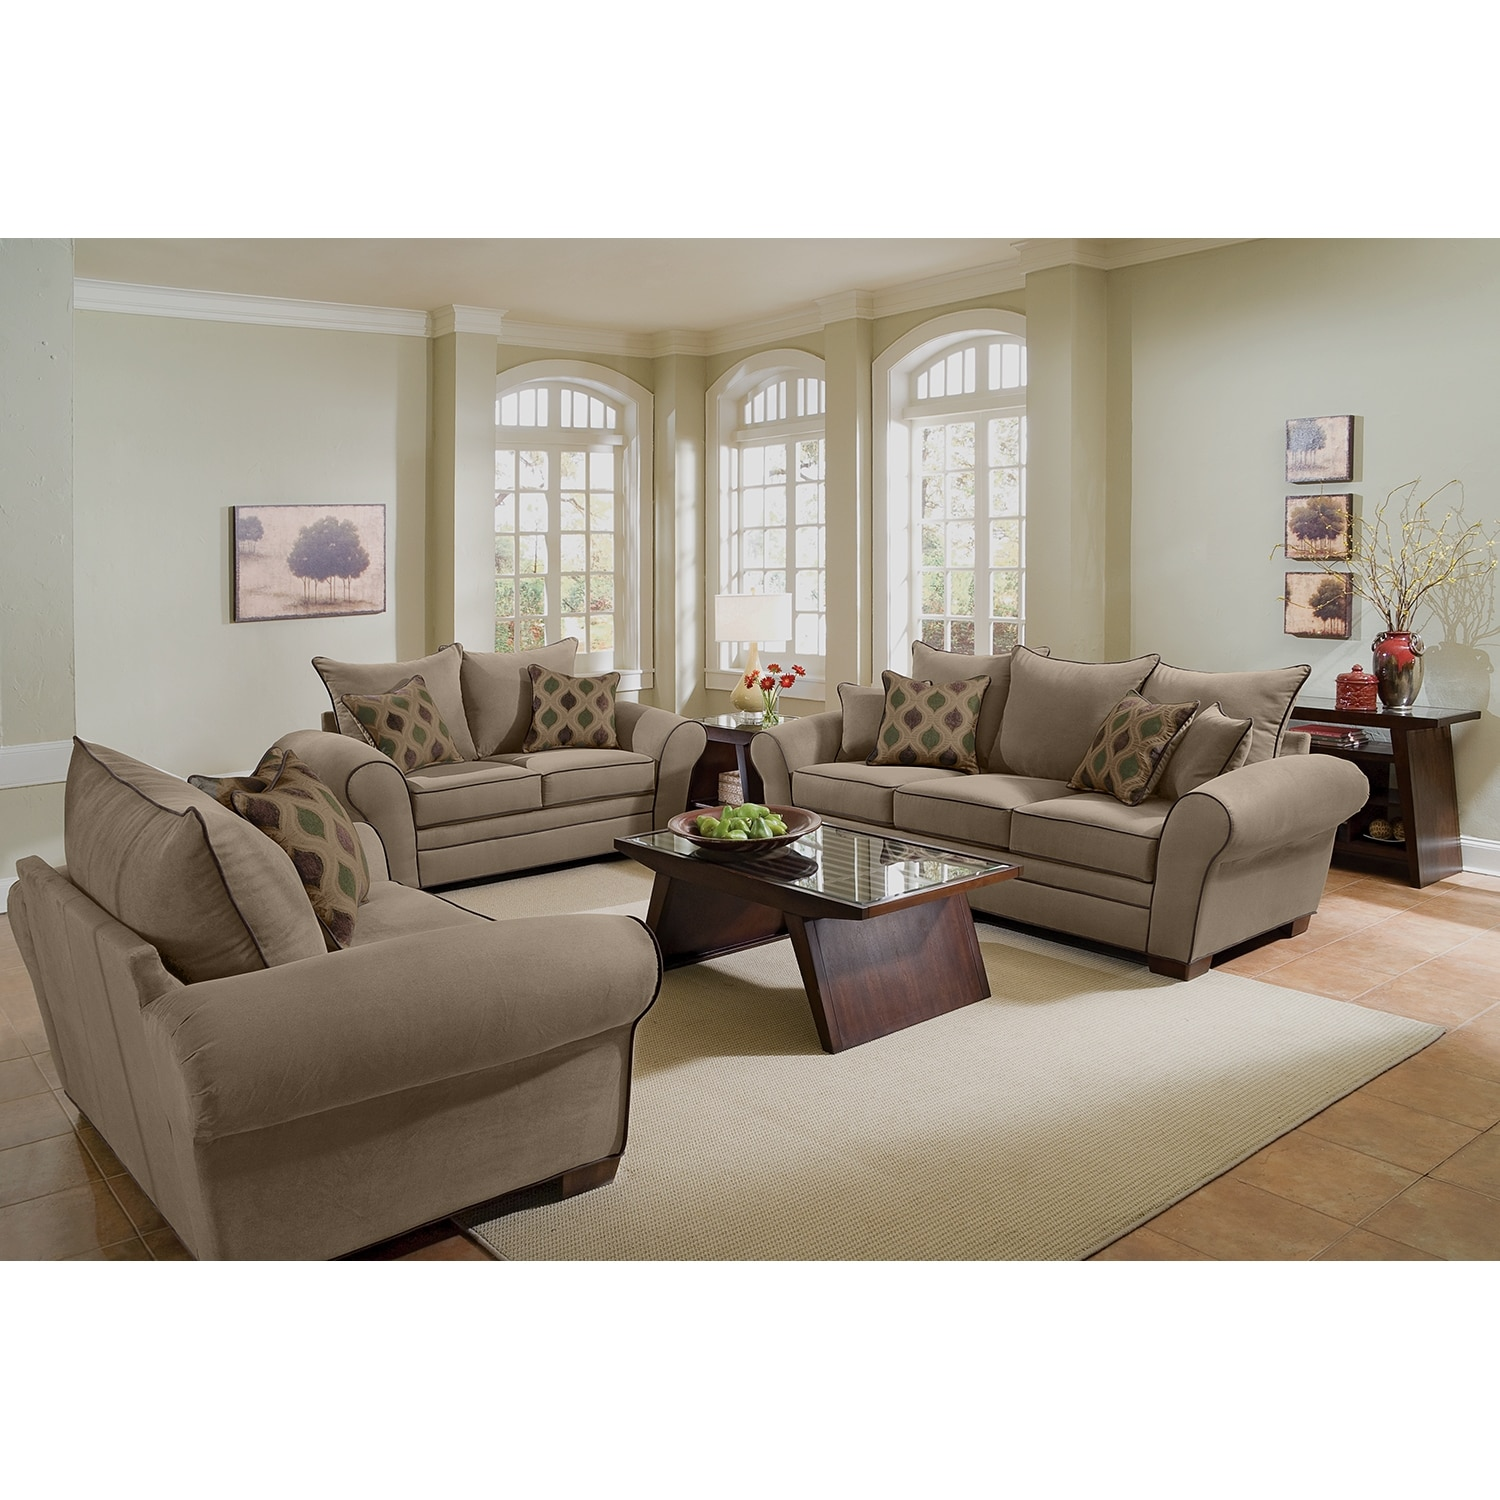 Kroehler Sofa Venti 3 Piece Sectional Red Value City